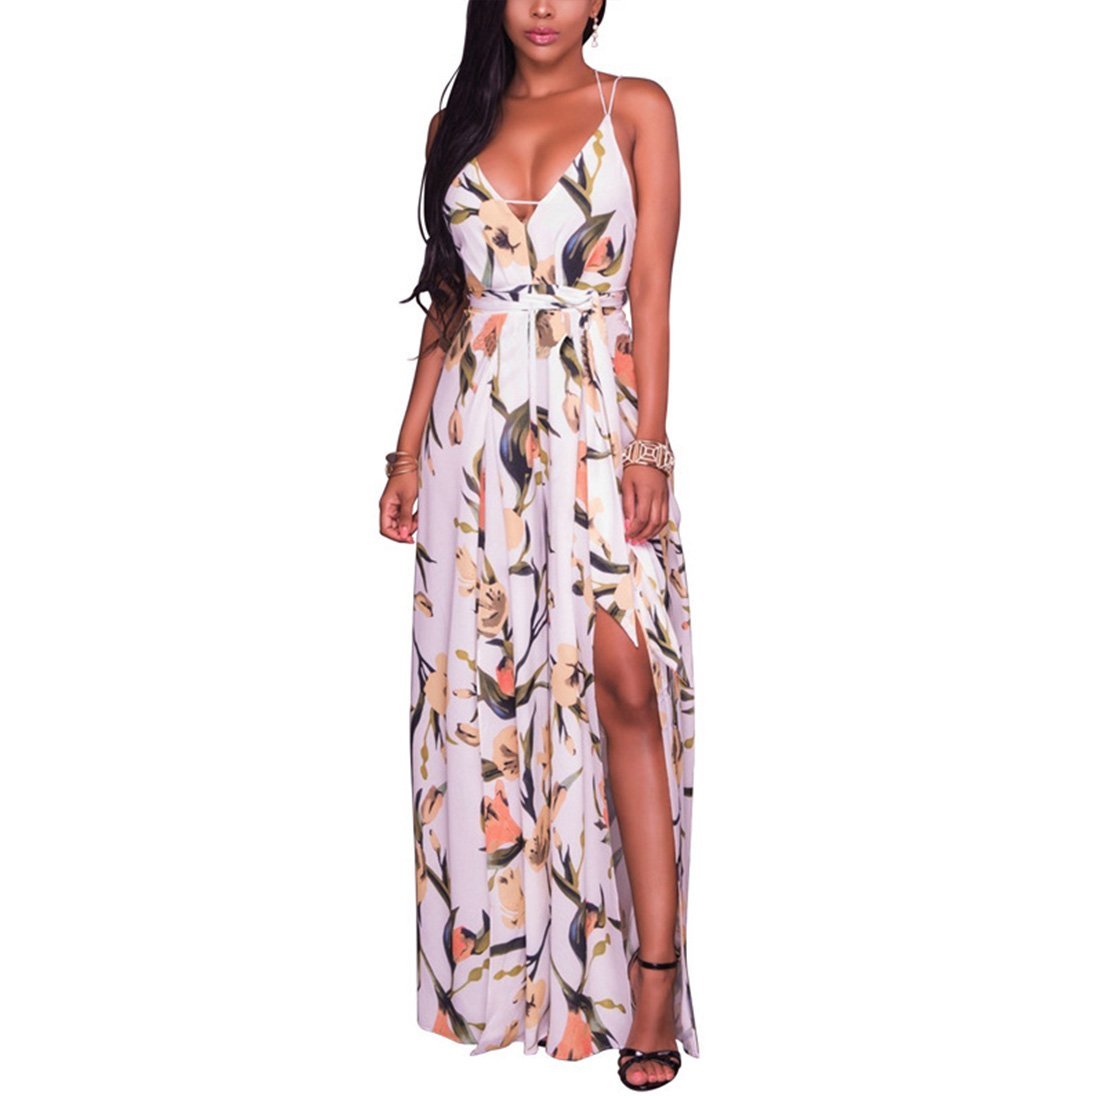 afbeacff20dd YYF Womens Sexy V-Neck Backless Floral Print High Split Beach Romper Maxi  Dress Jumpsuit  Amazon.co.uk  Clothing